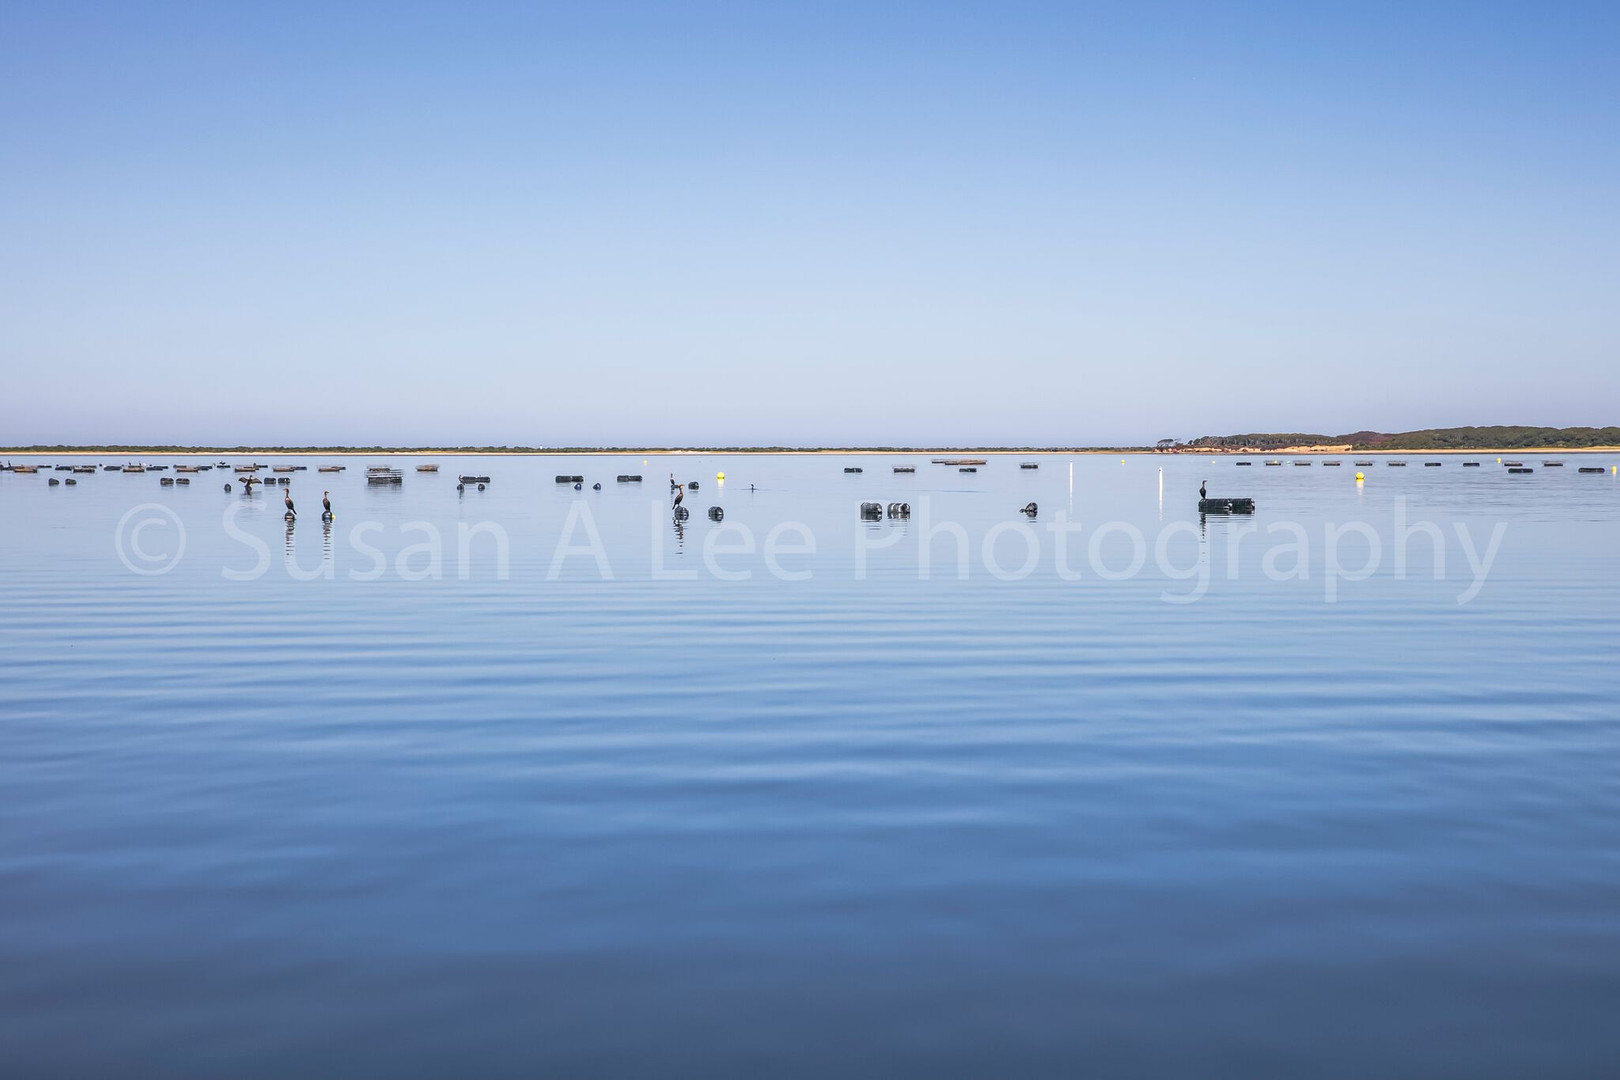 Oyster Beds with Crates